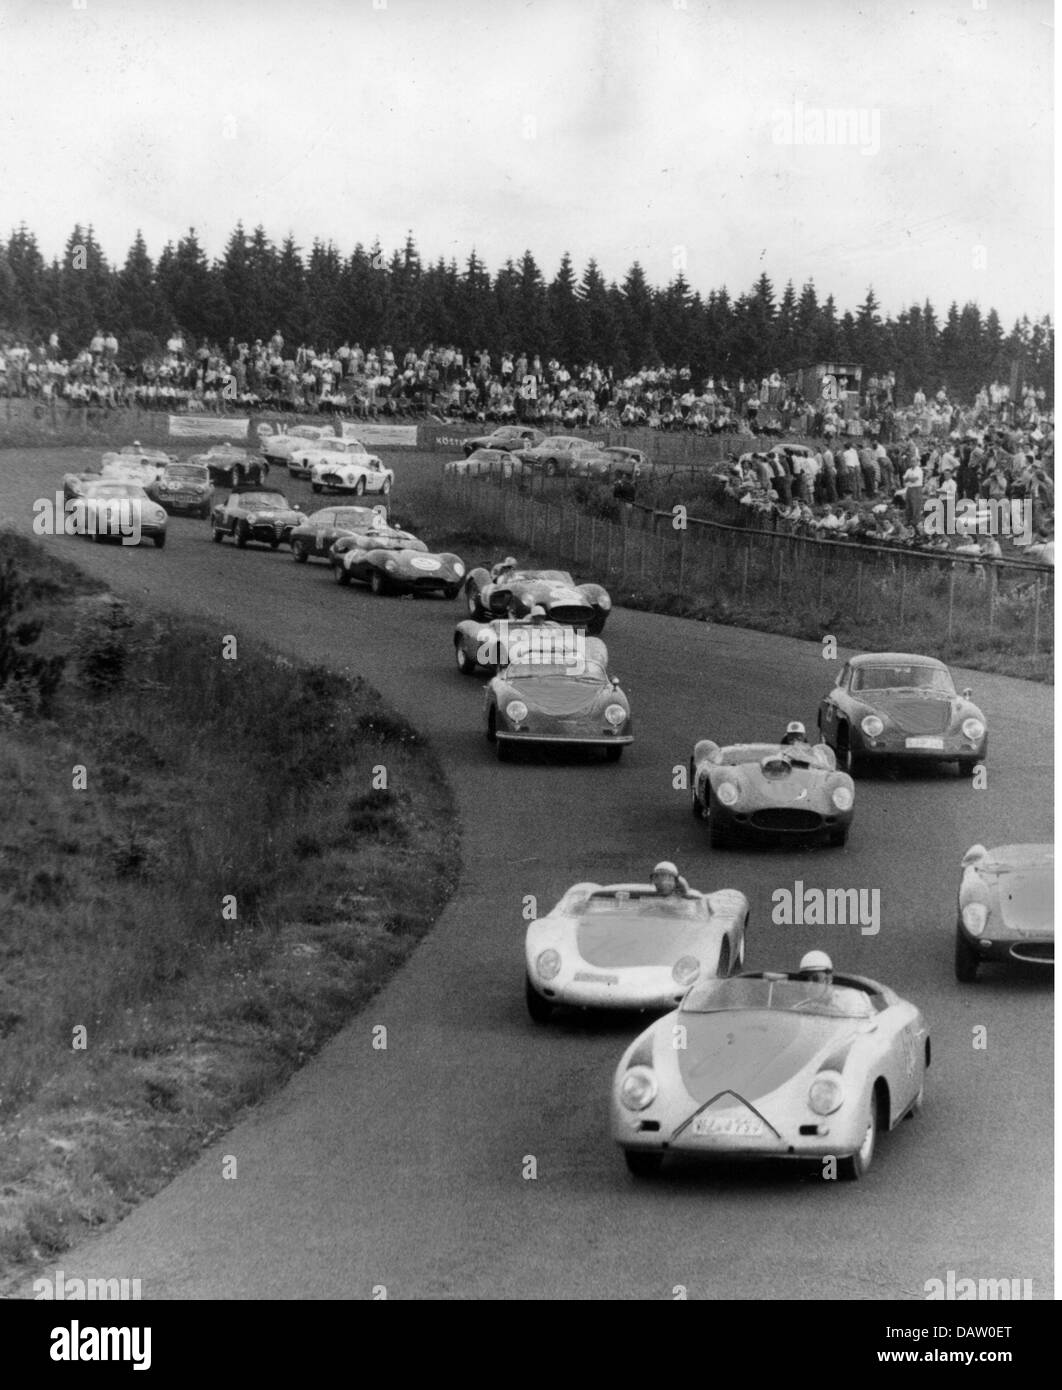 Sport, Car Racing, Race, 1950s, 50s, Cars, 20th Century, Historic,  Historical,